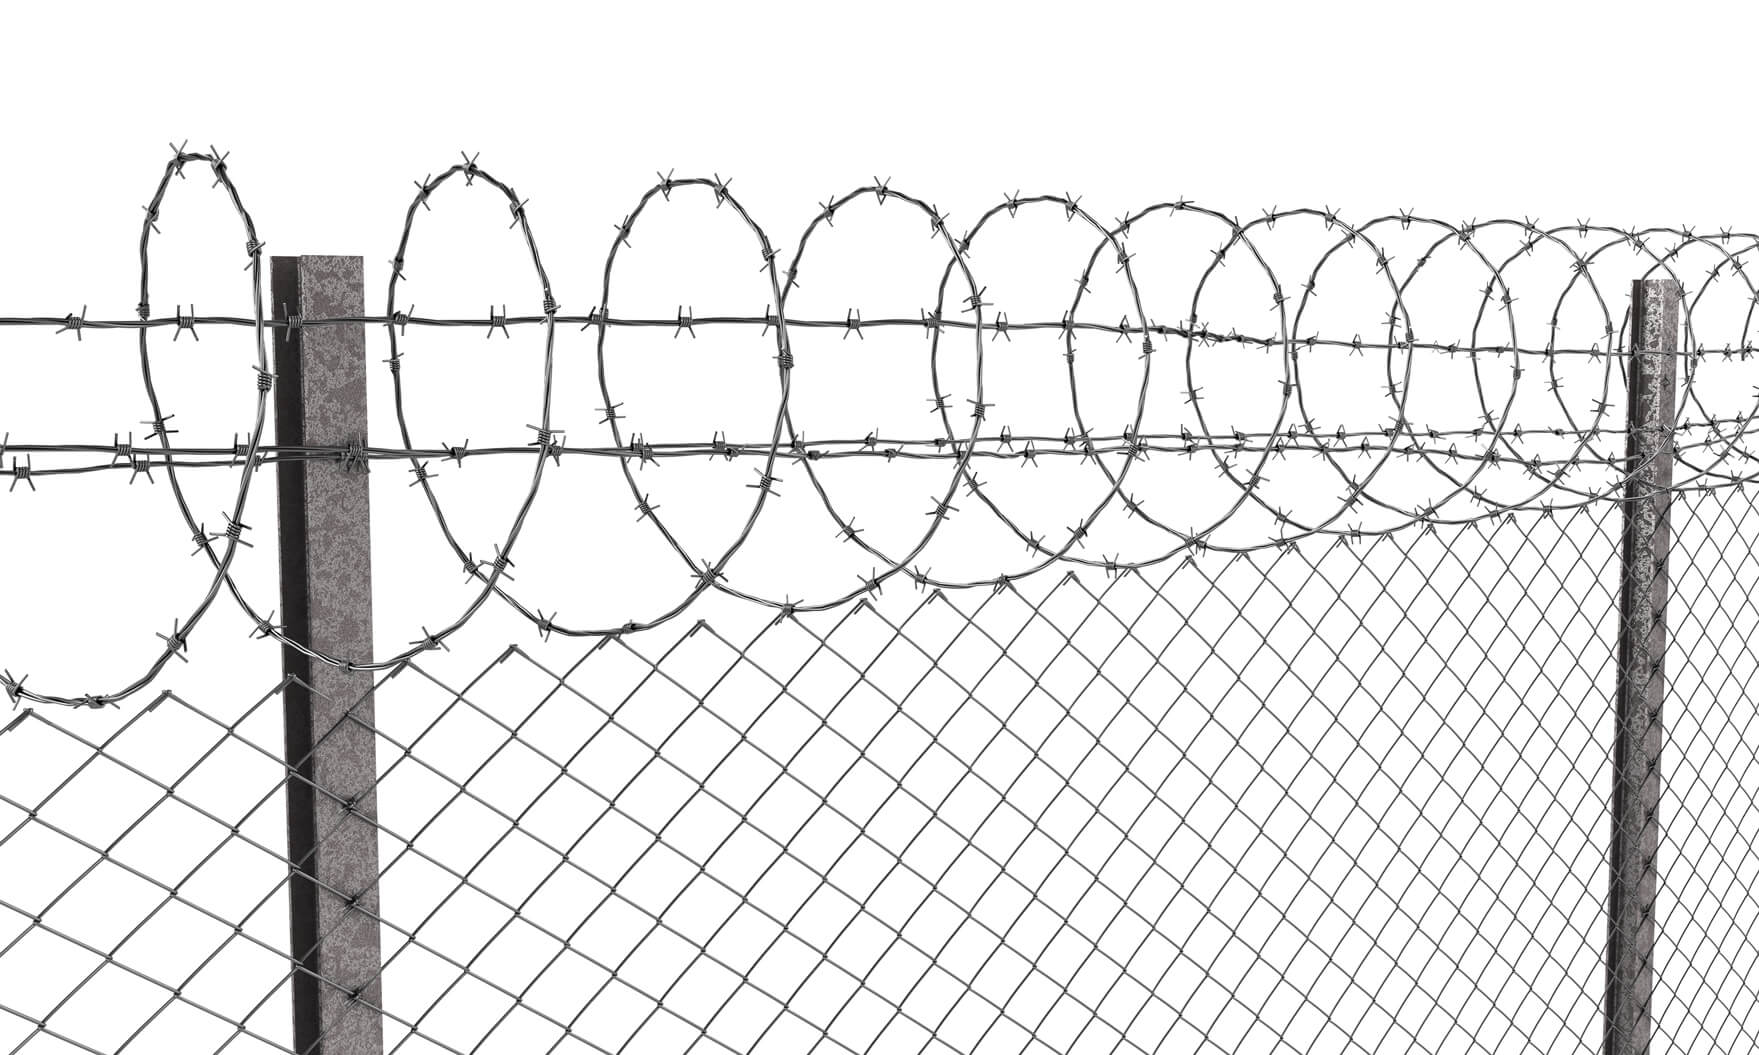 Chainlink fence with barbed wire on top, isolated on white background